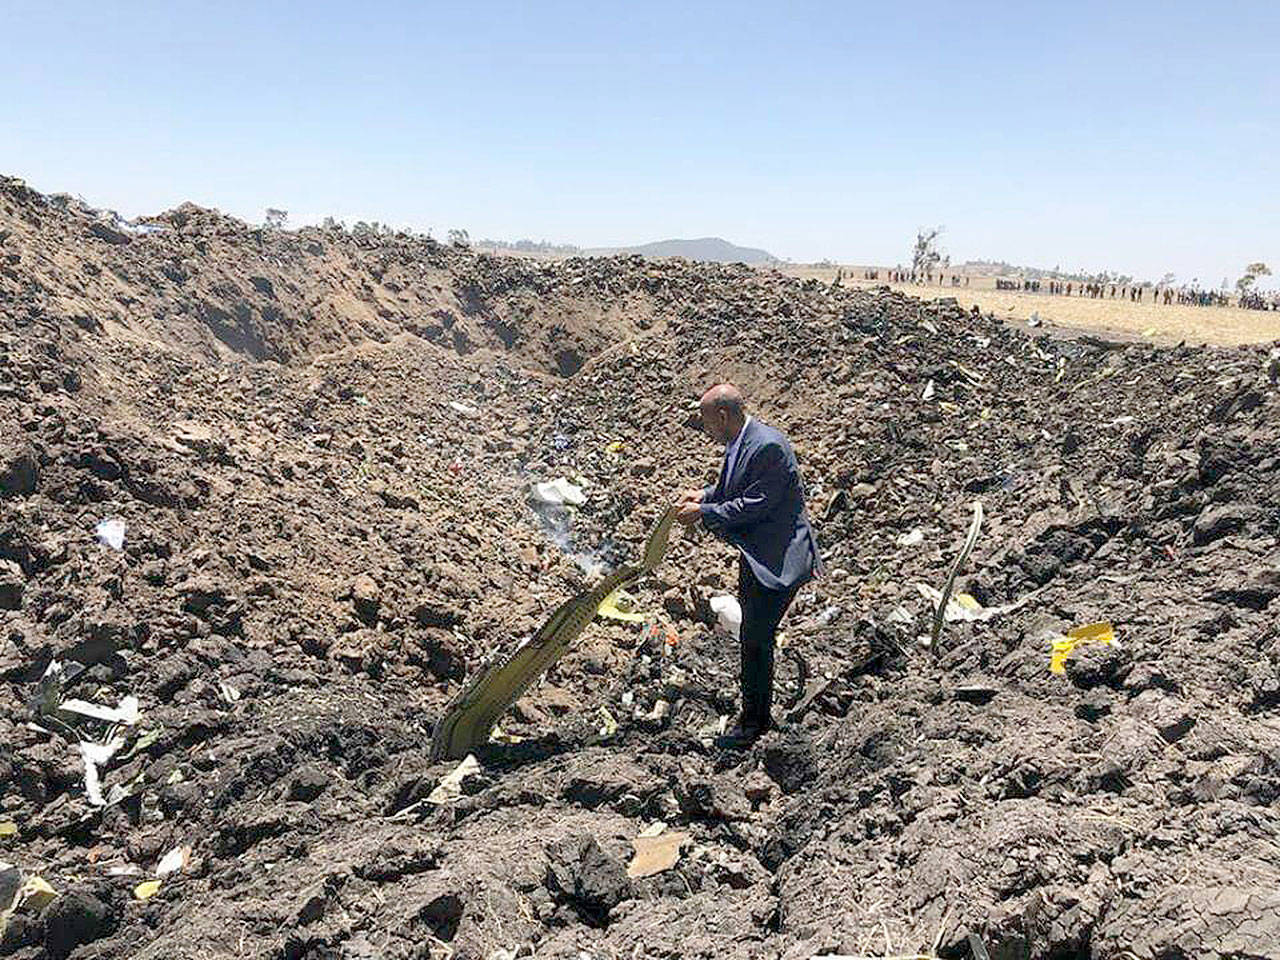 In this photo taken from the Ethiopian Airlines Facebook page, the CEO of Ethiopian Airlines, Tewolde Gebremariam, looks at the wreckage of the plane that crashed shortly after takeoff from Addis Ababa, Ethiopia, Sunday March 10. All 157 people thought to be on board died, the airline and state broadcaster said, as anxious families rushed to airports in Addis Ababa and the destination, Nairobi. (Facebook via AP)